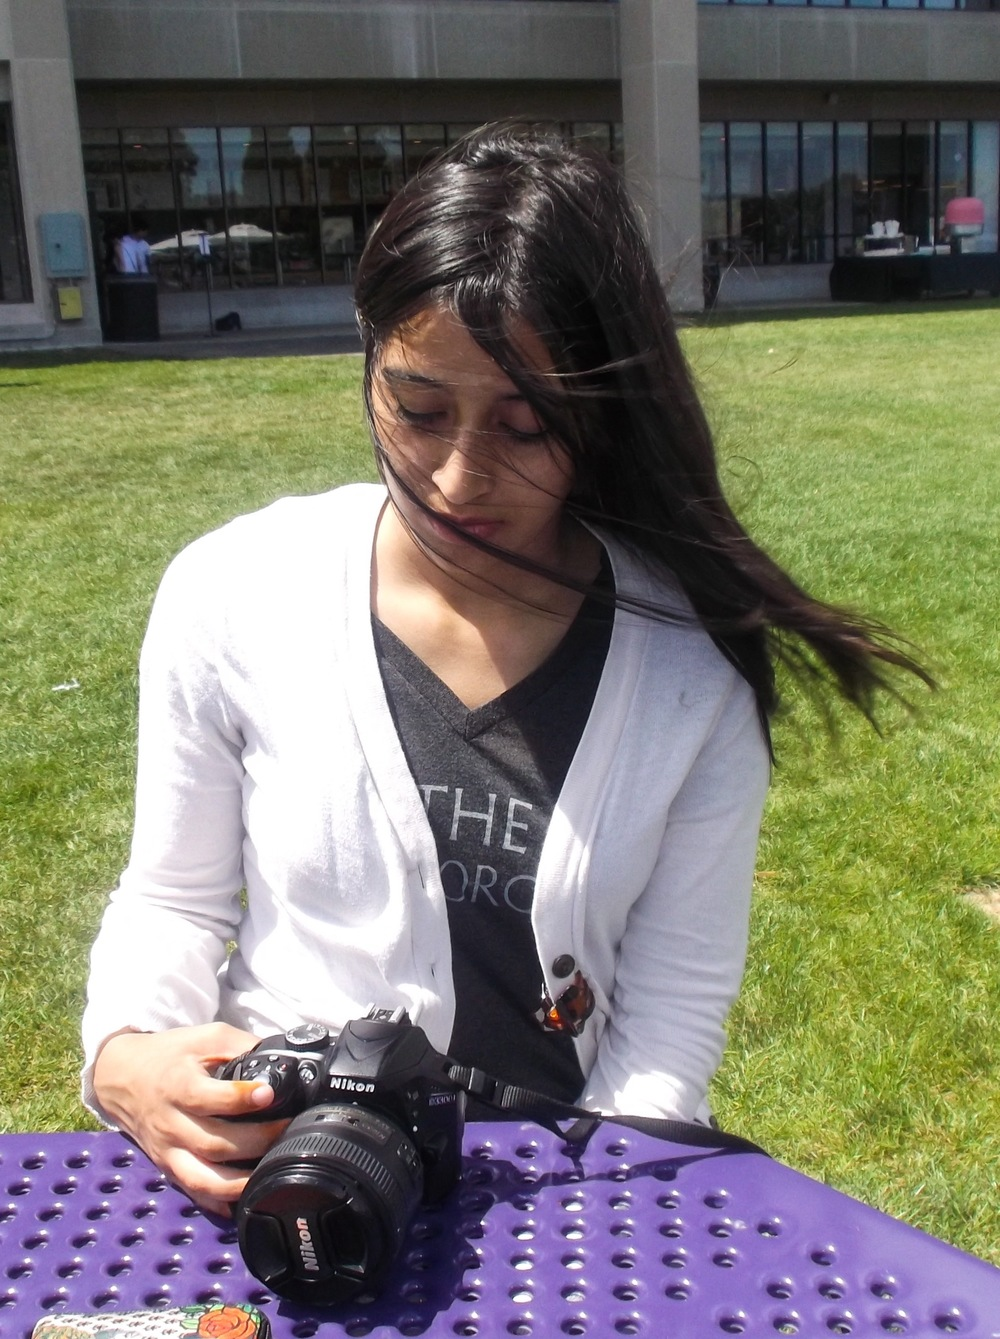 Image taken by 15 year old Elijah as part of a photography workshop I led with Youth & Opportunities United